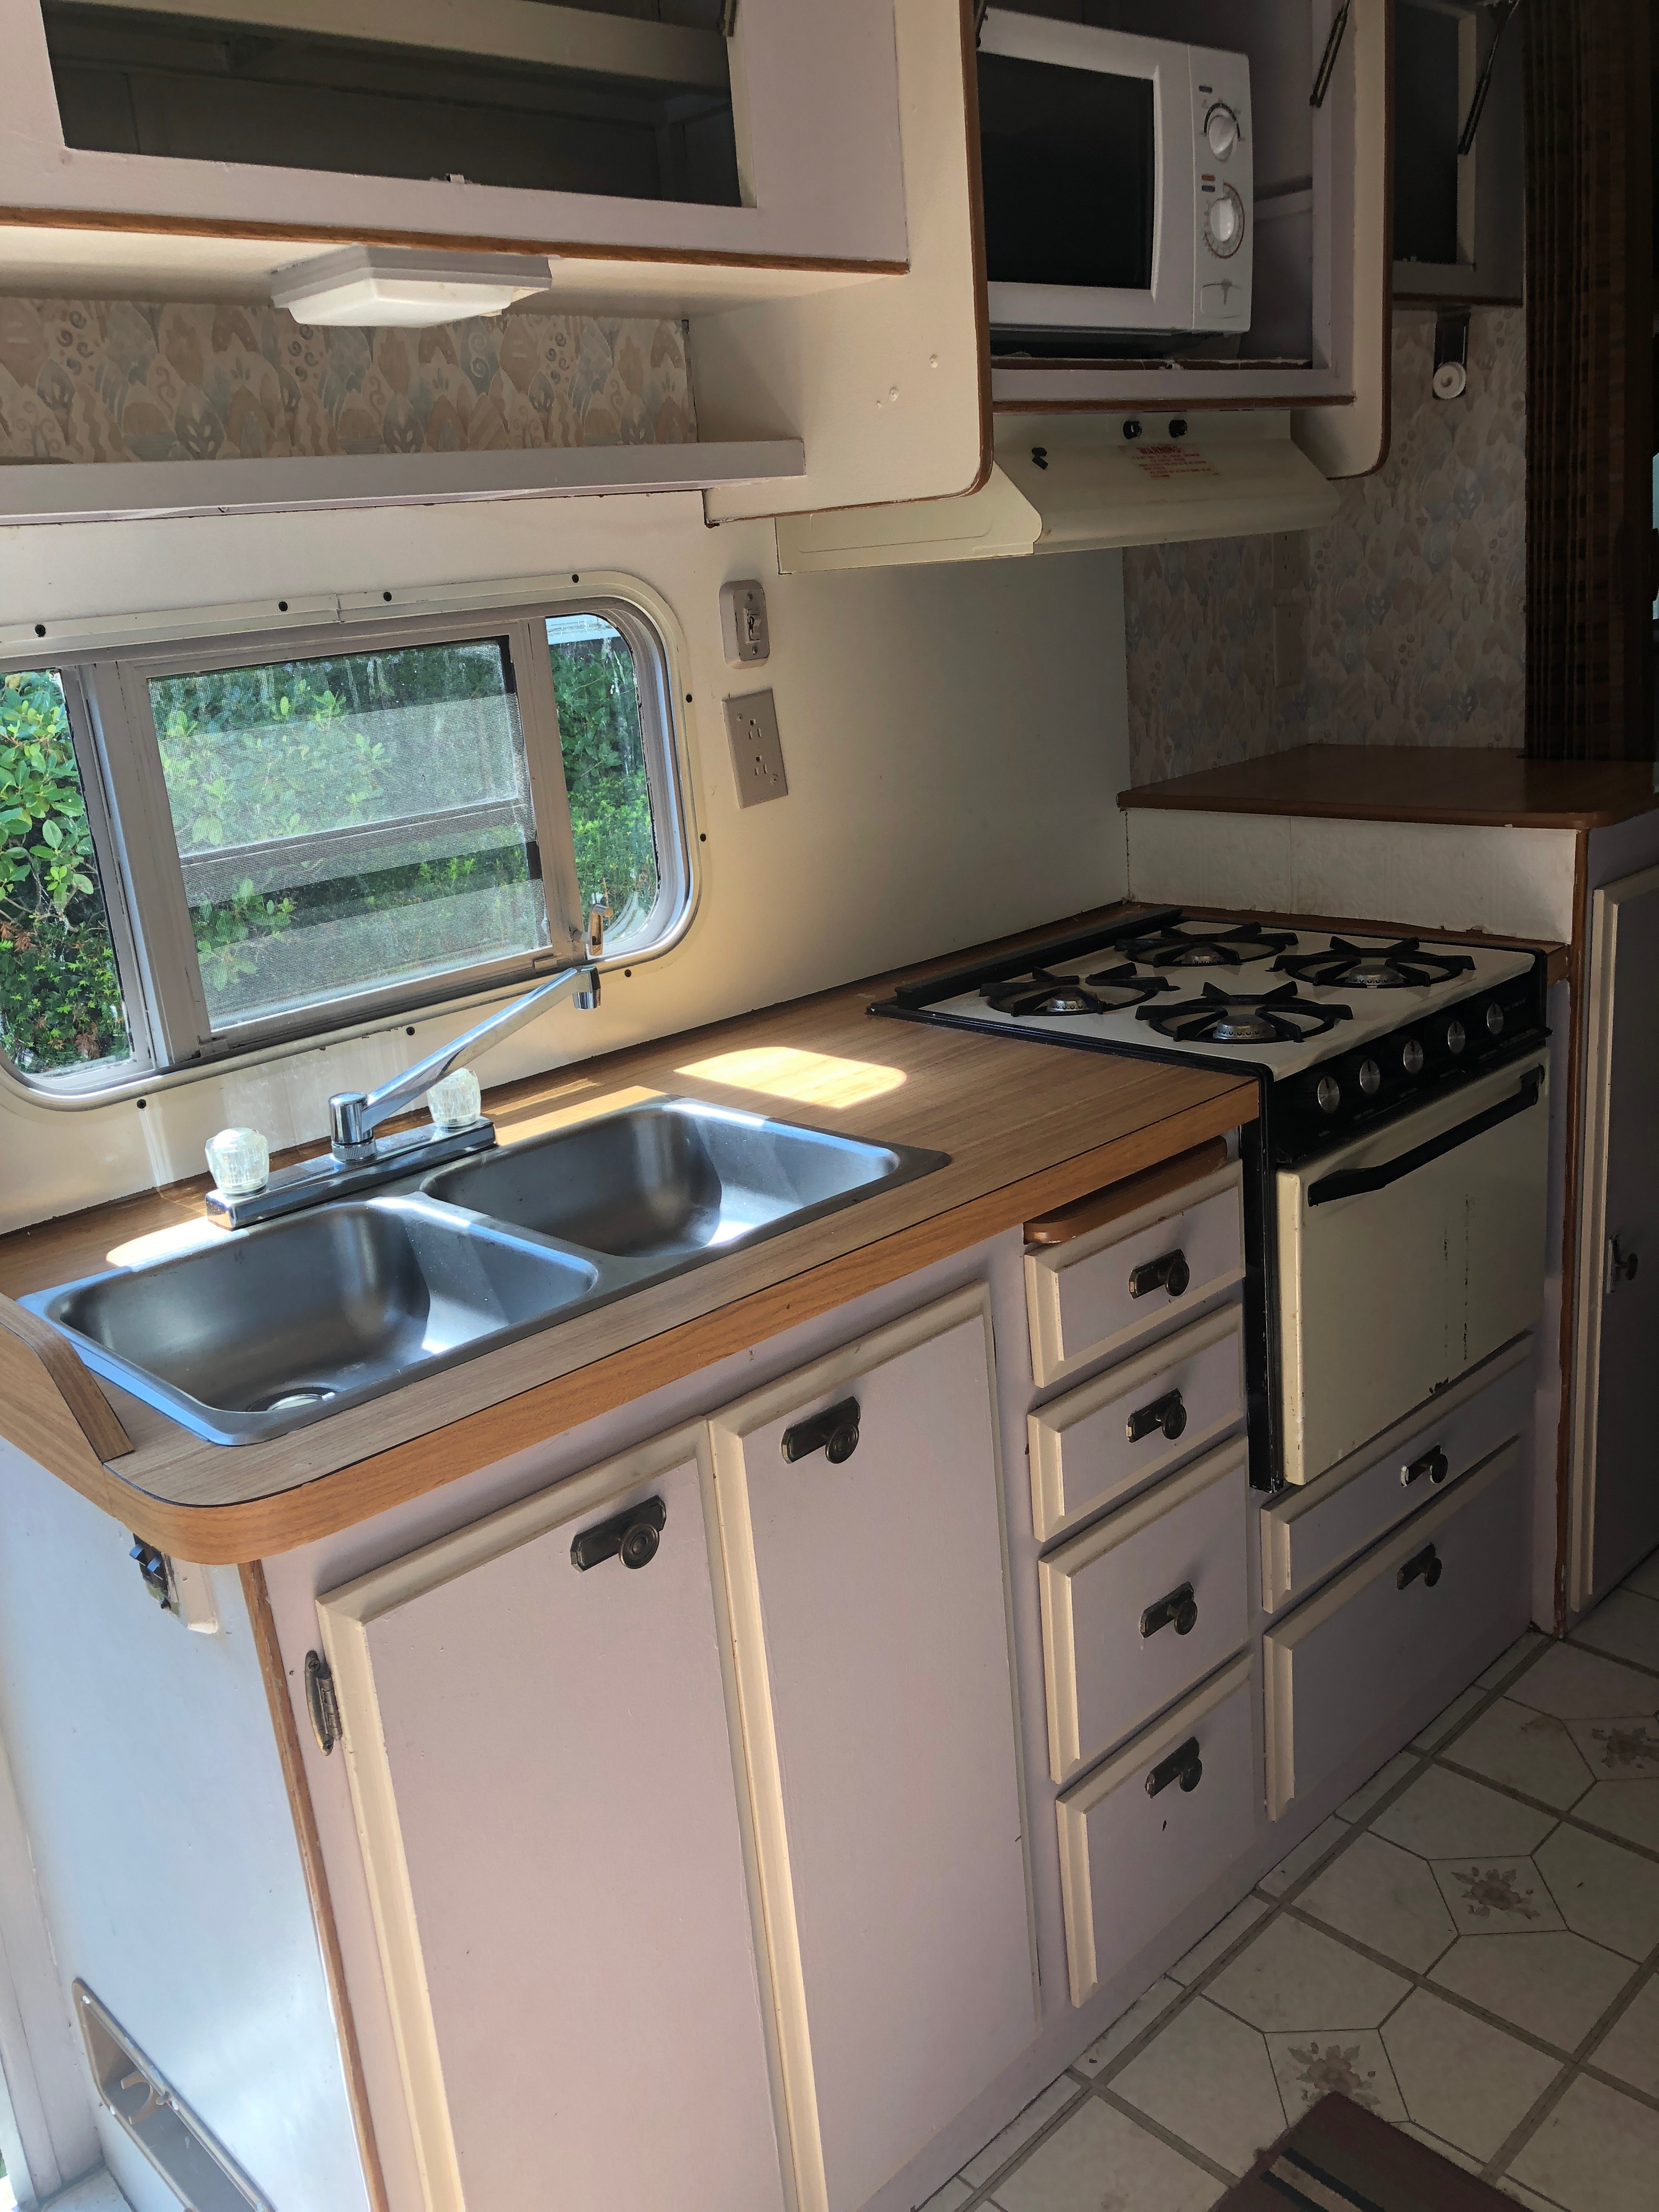 sink, stove, oven, and cabinets . Prowler FRWD 1986